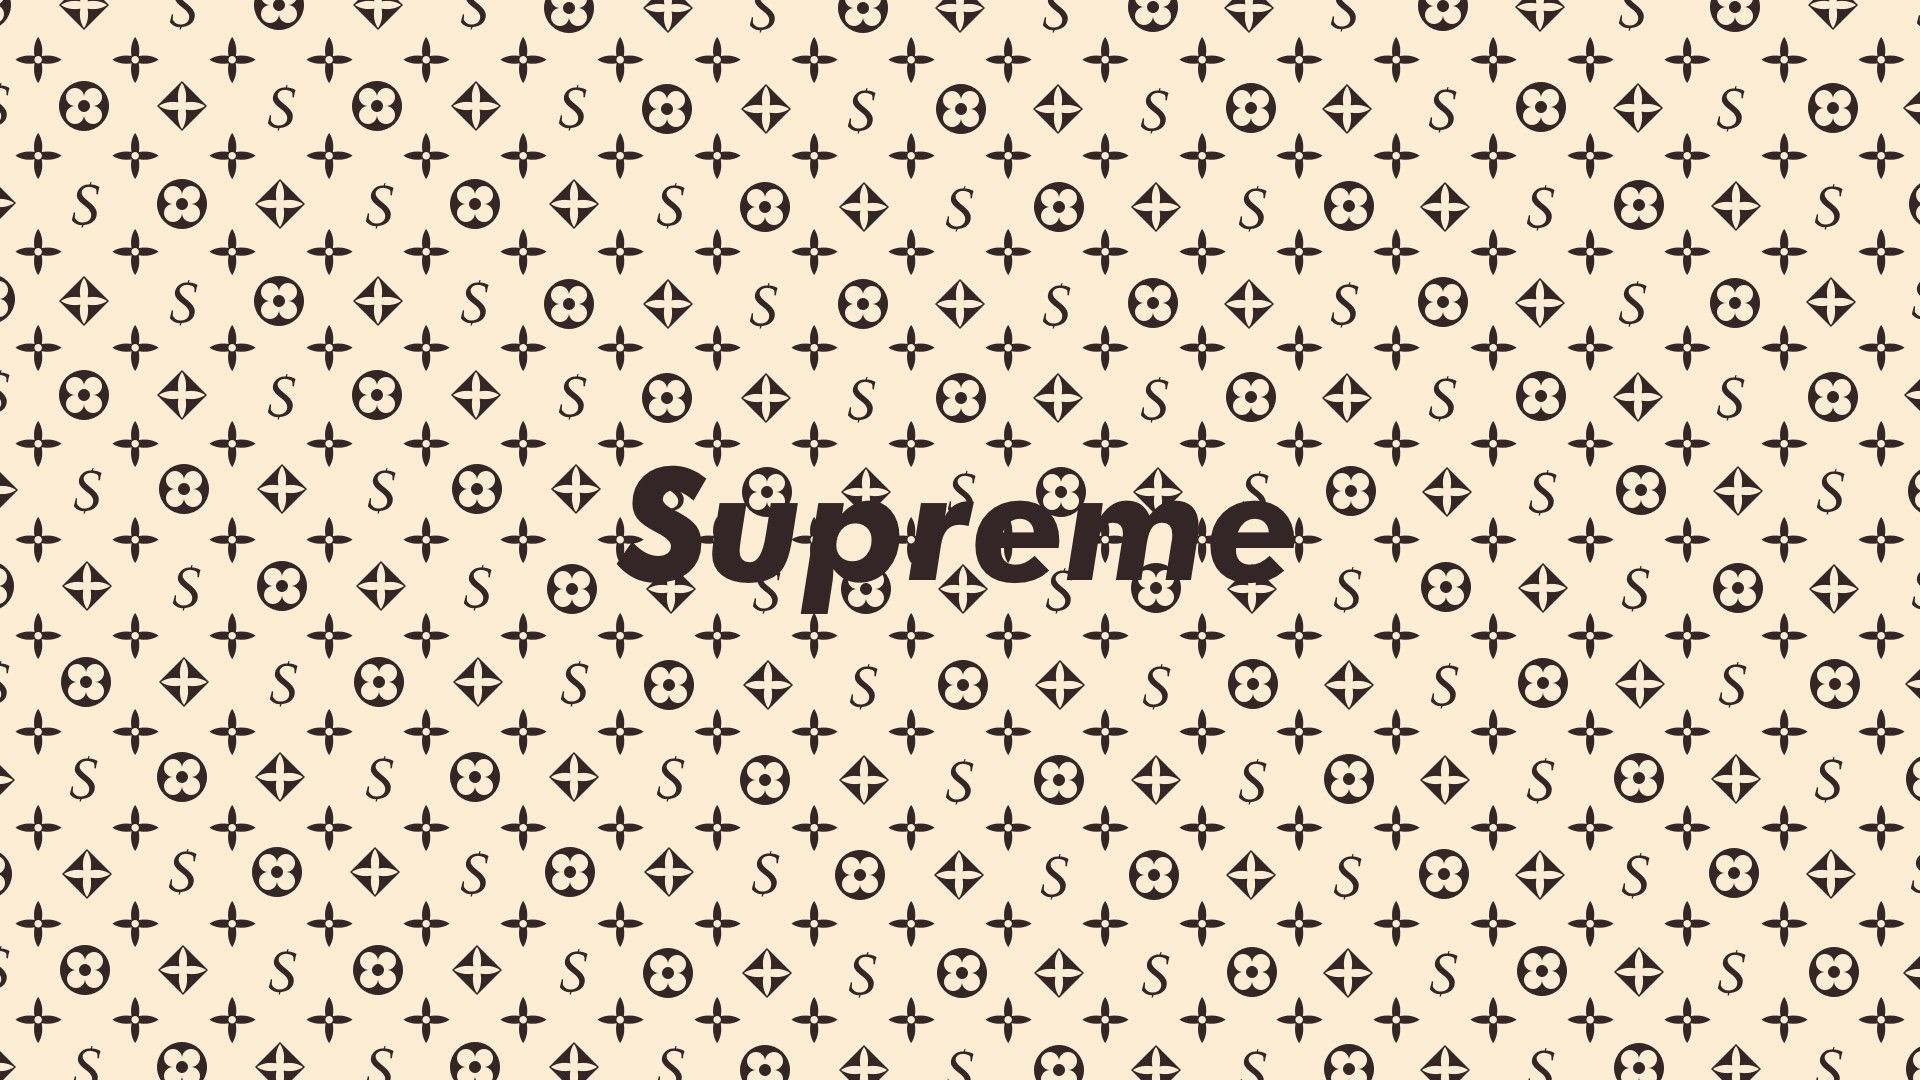 Louis Vuitton Supreme Computer Wallpapers Top Free Louis Vuitton Supreme Computer Backgrounds Wallpaperaccess